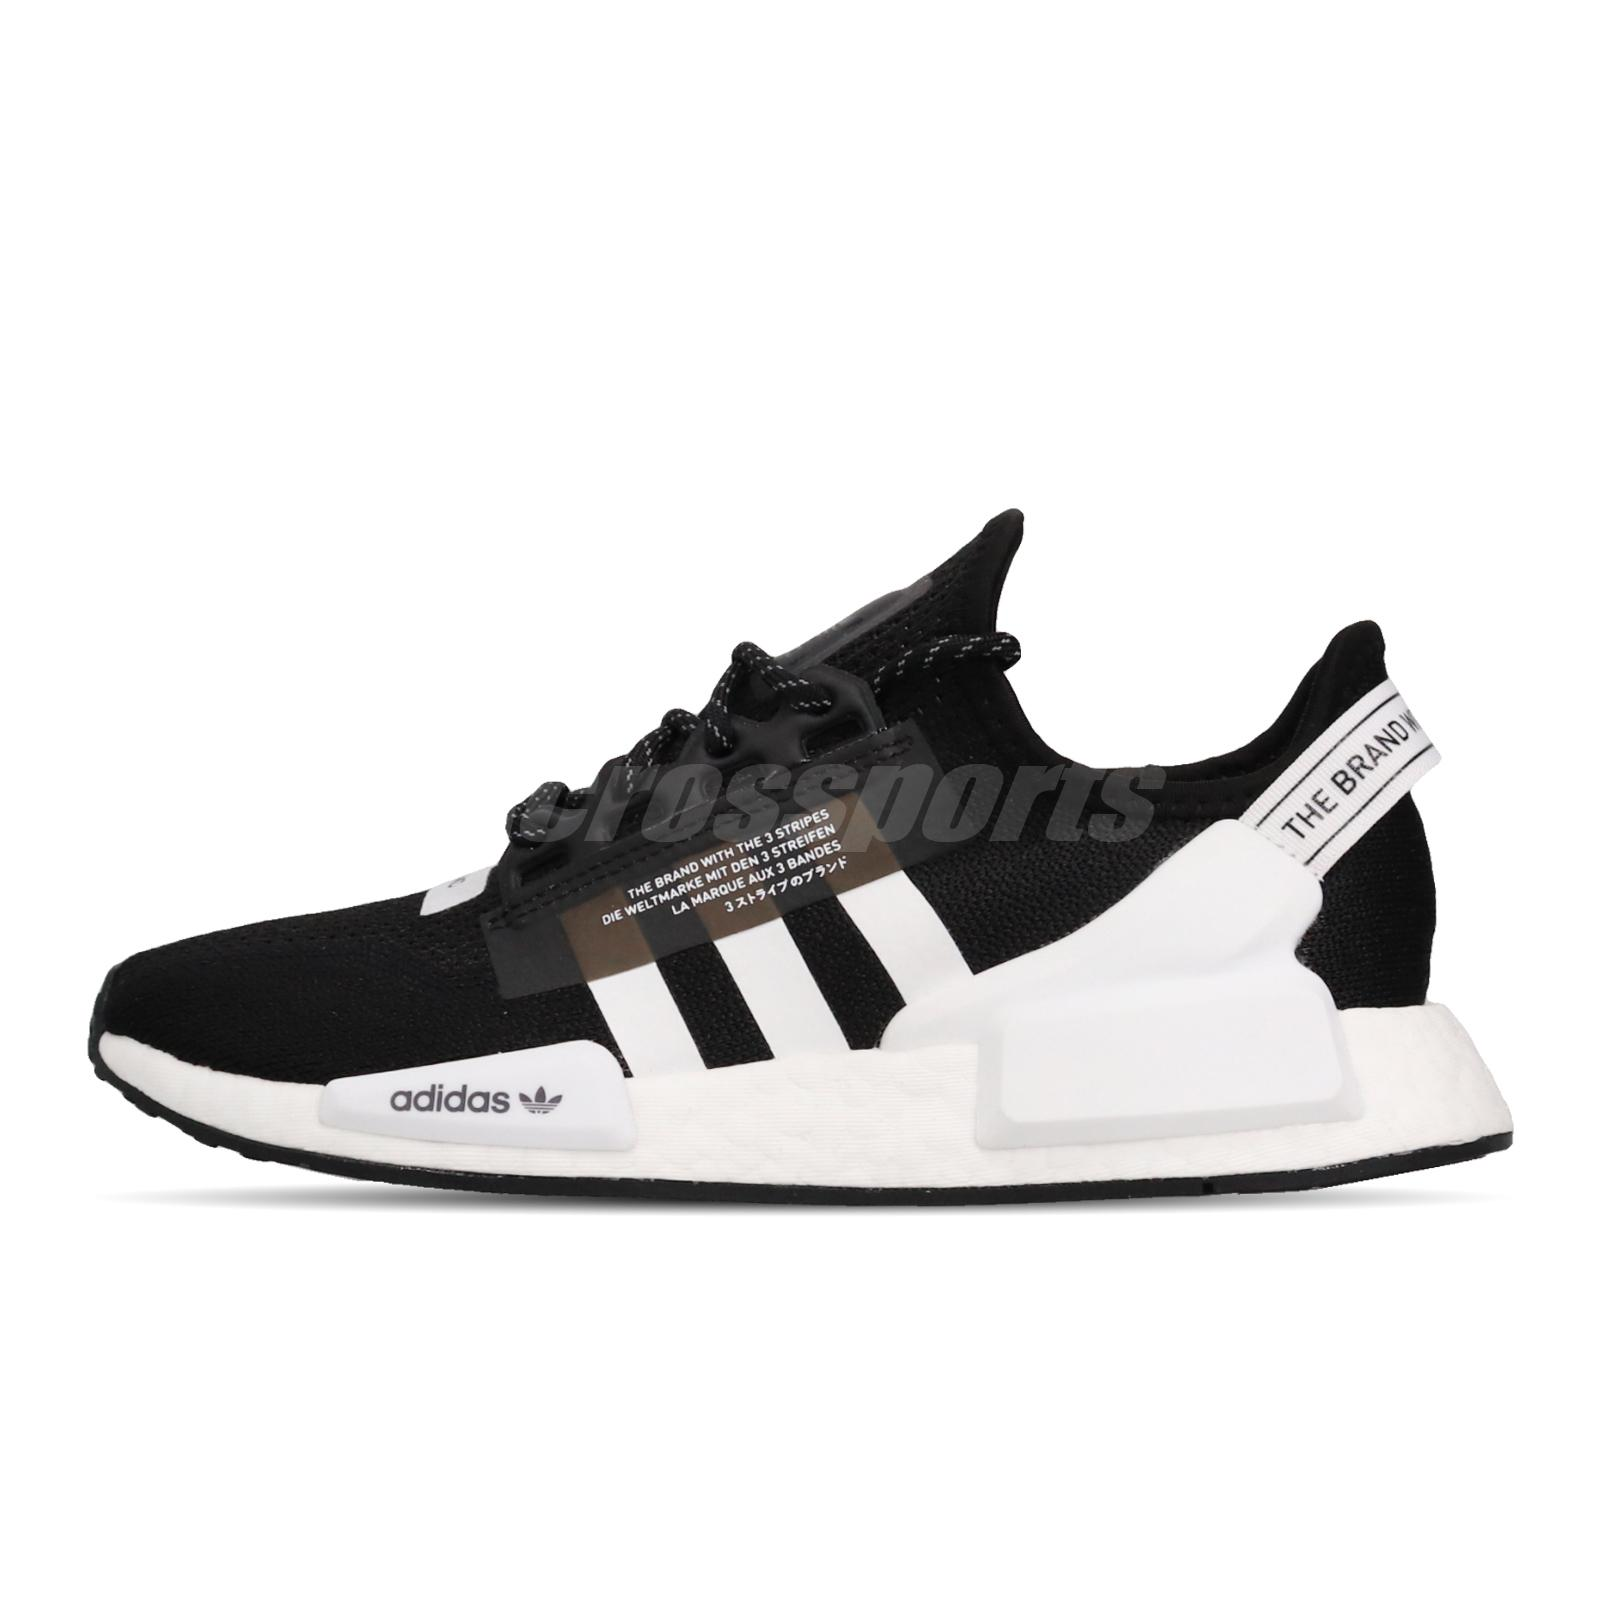 Adidas Nmd R1 V2 Boost Black White Mens Womens Lifestyle Shoes Sneakers Fv9021 Ebay